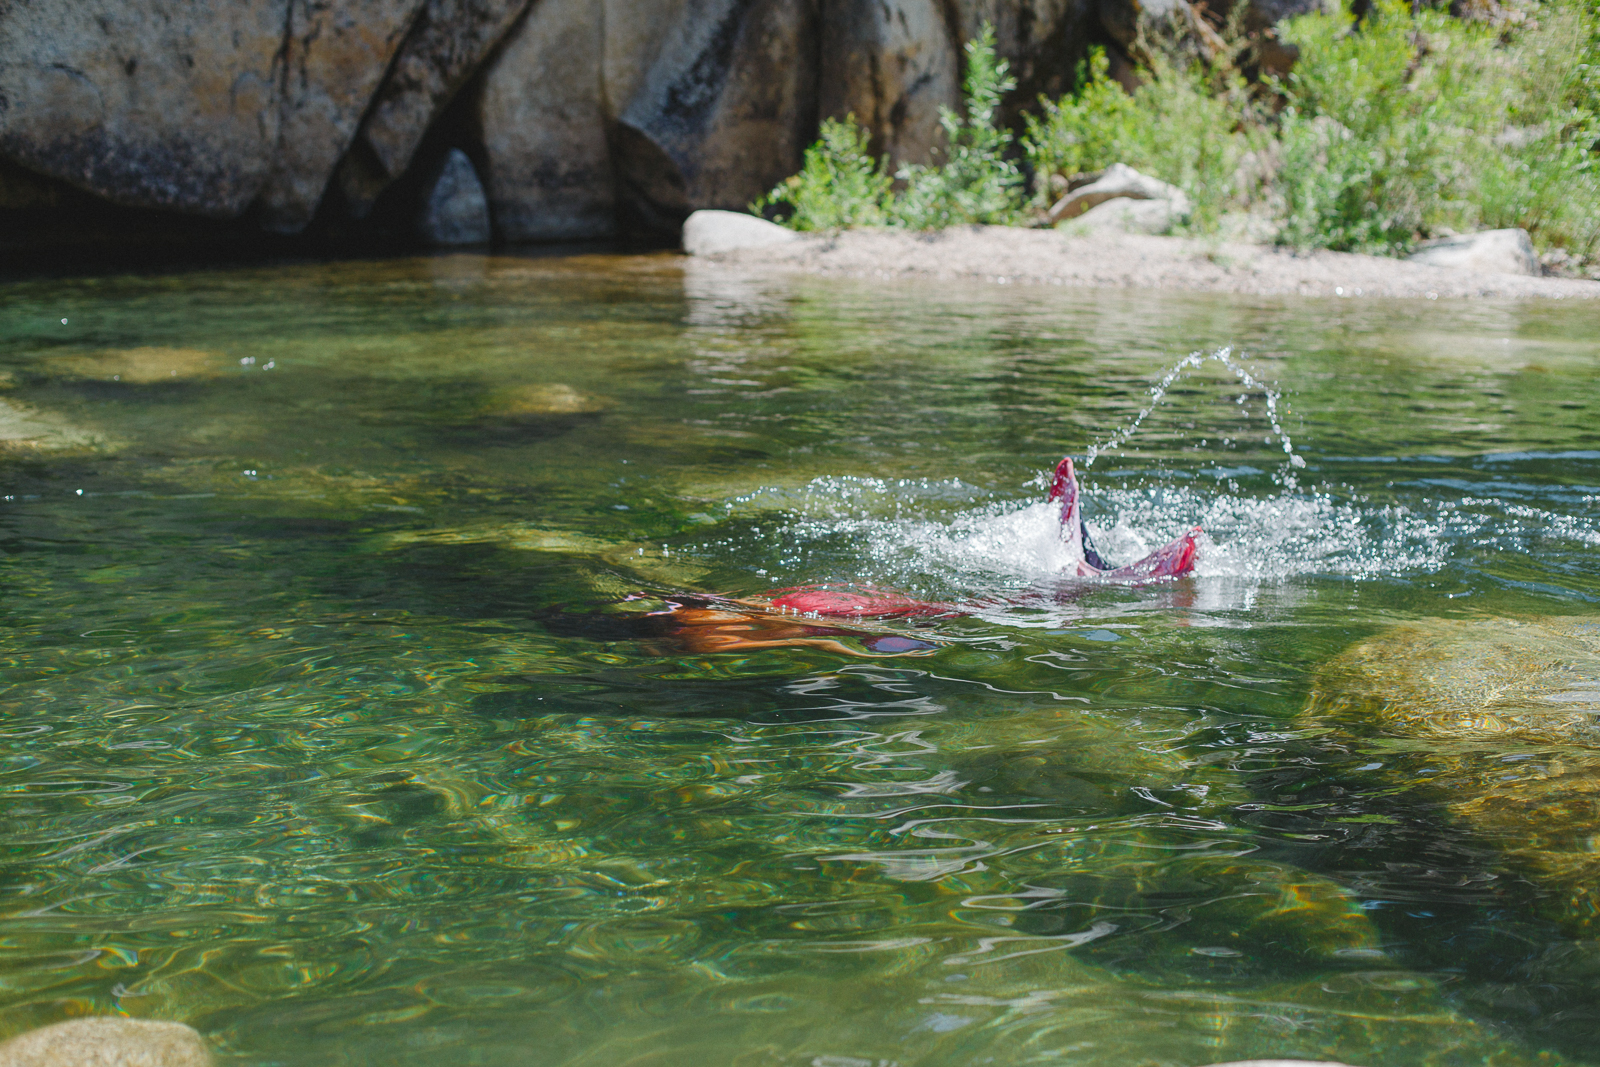 Mermaid swimming in the Yuba River